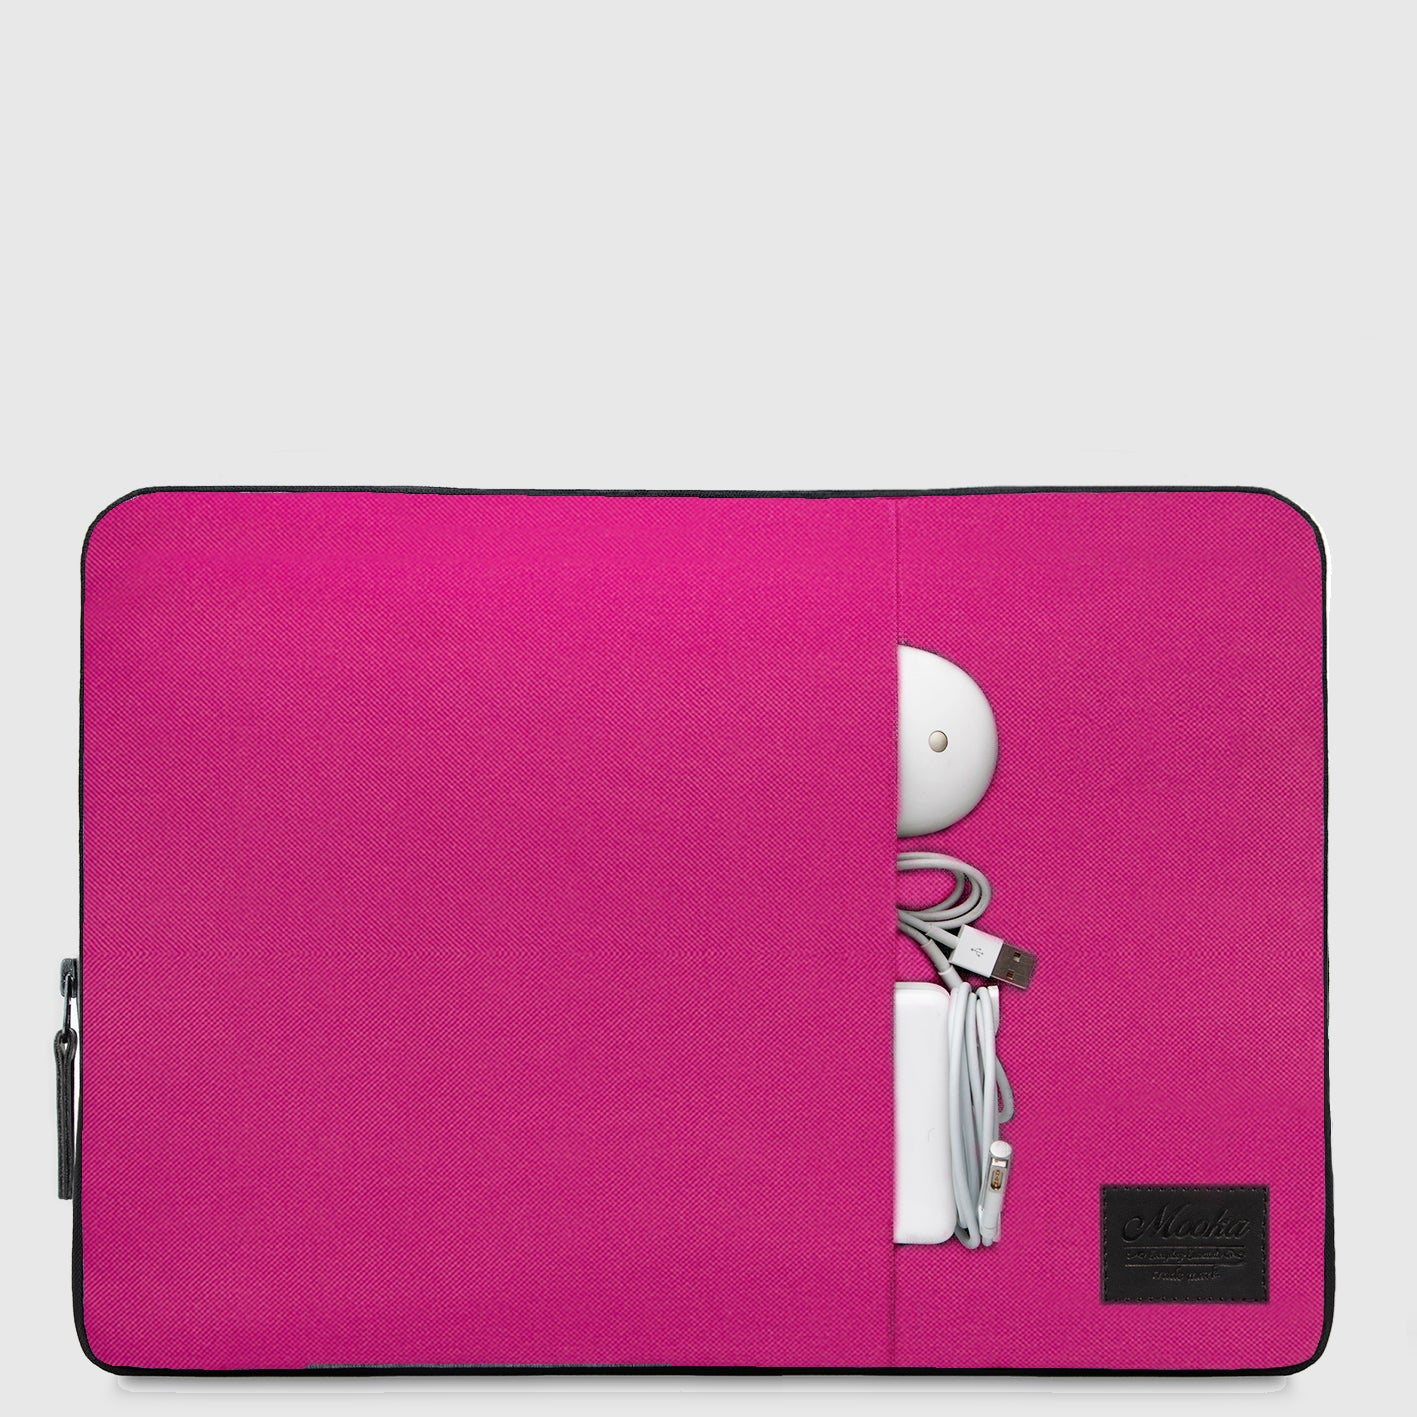 Mooka Witex Pocket Fucsia